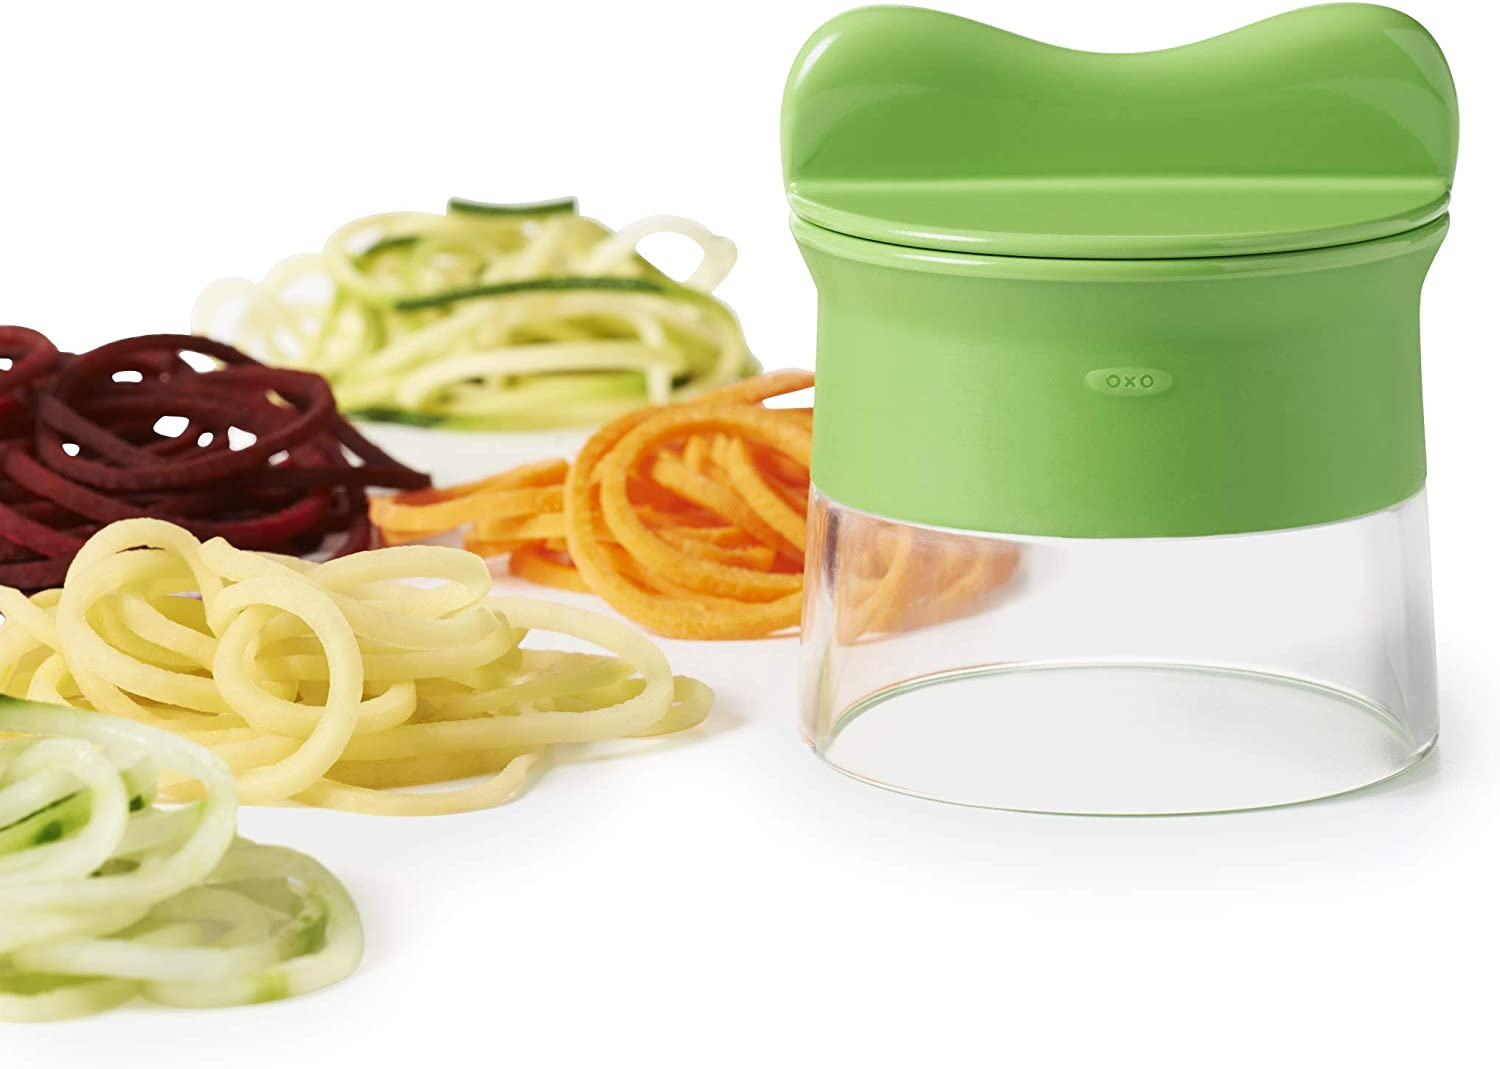 10 gadgets we actually use and love - OXO spiralizer